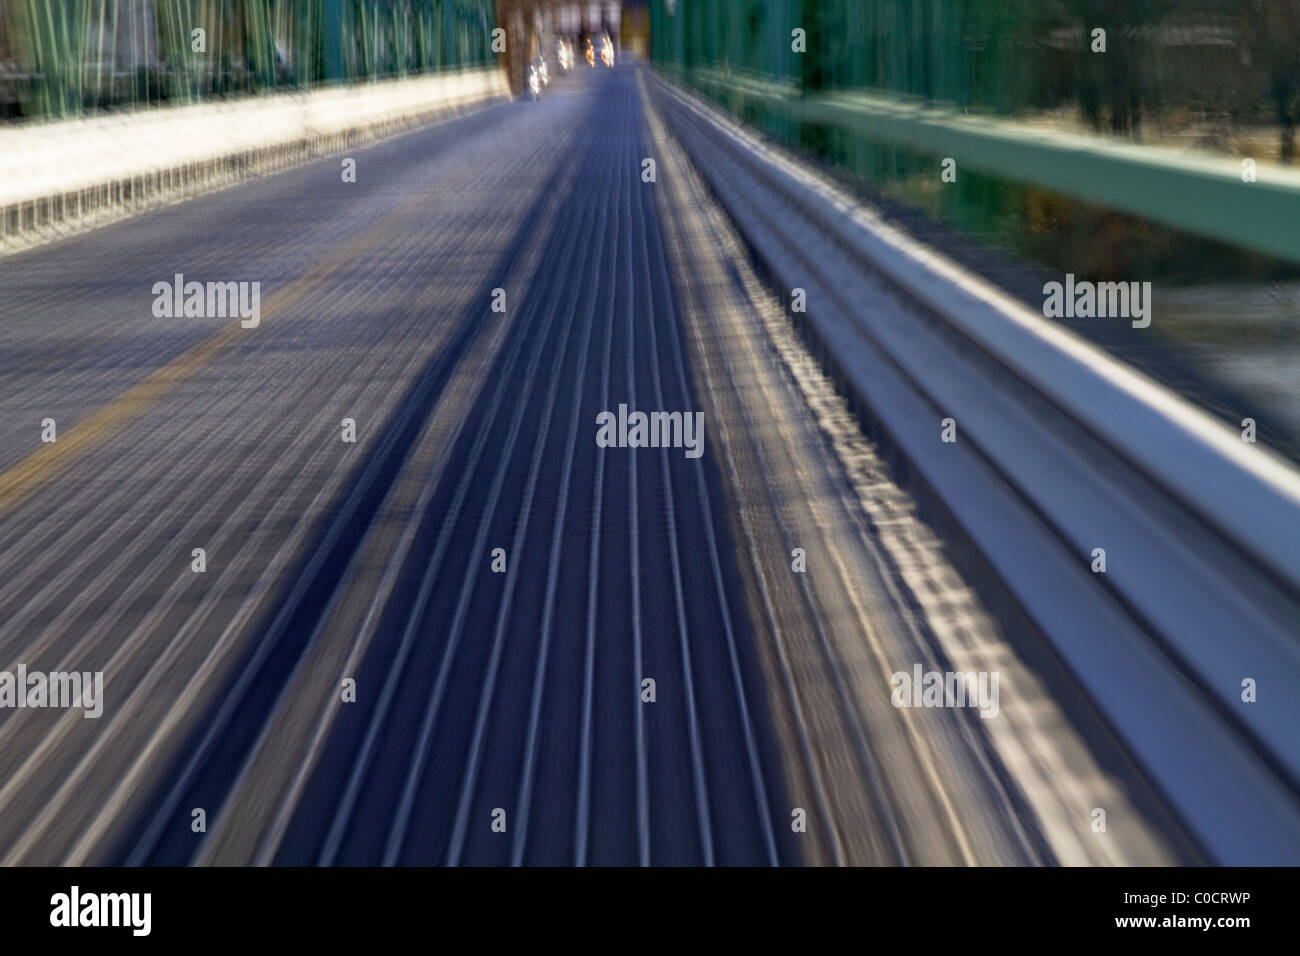 Motion blur of country bridge taken to create metaphor of path, journey, and approaching, differentiated lights - Stock Image